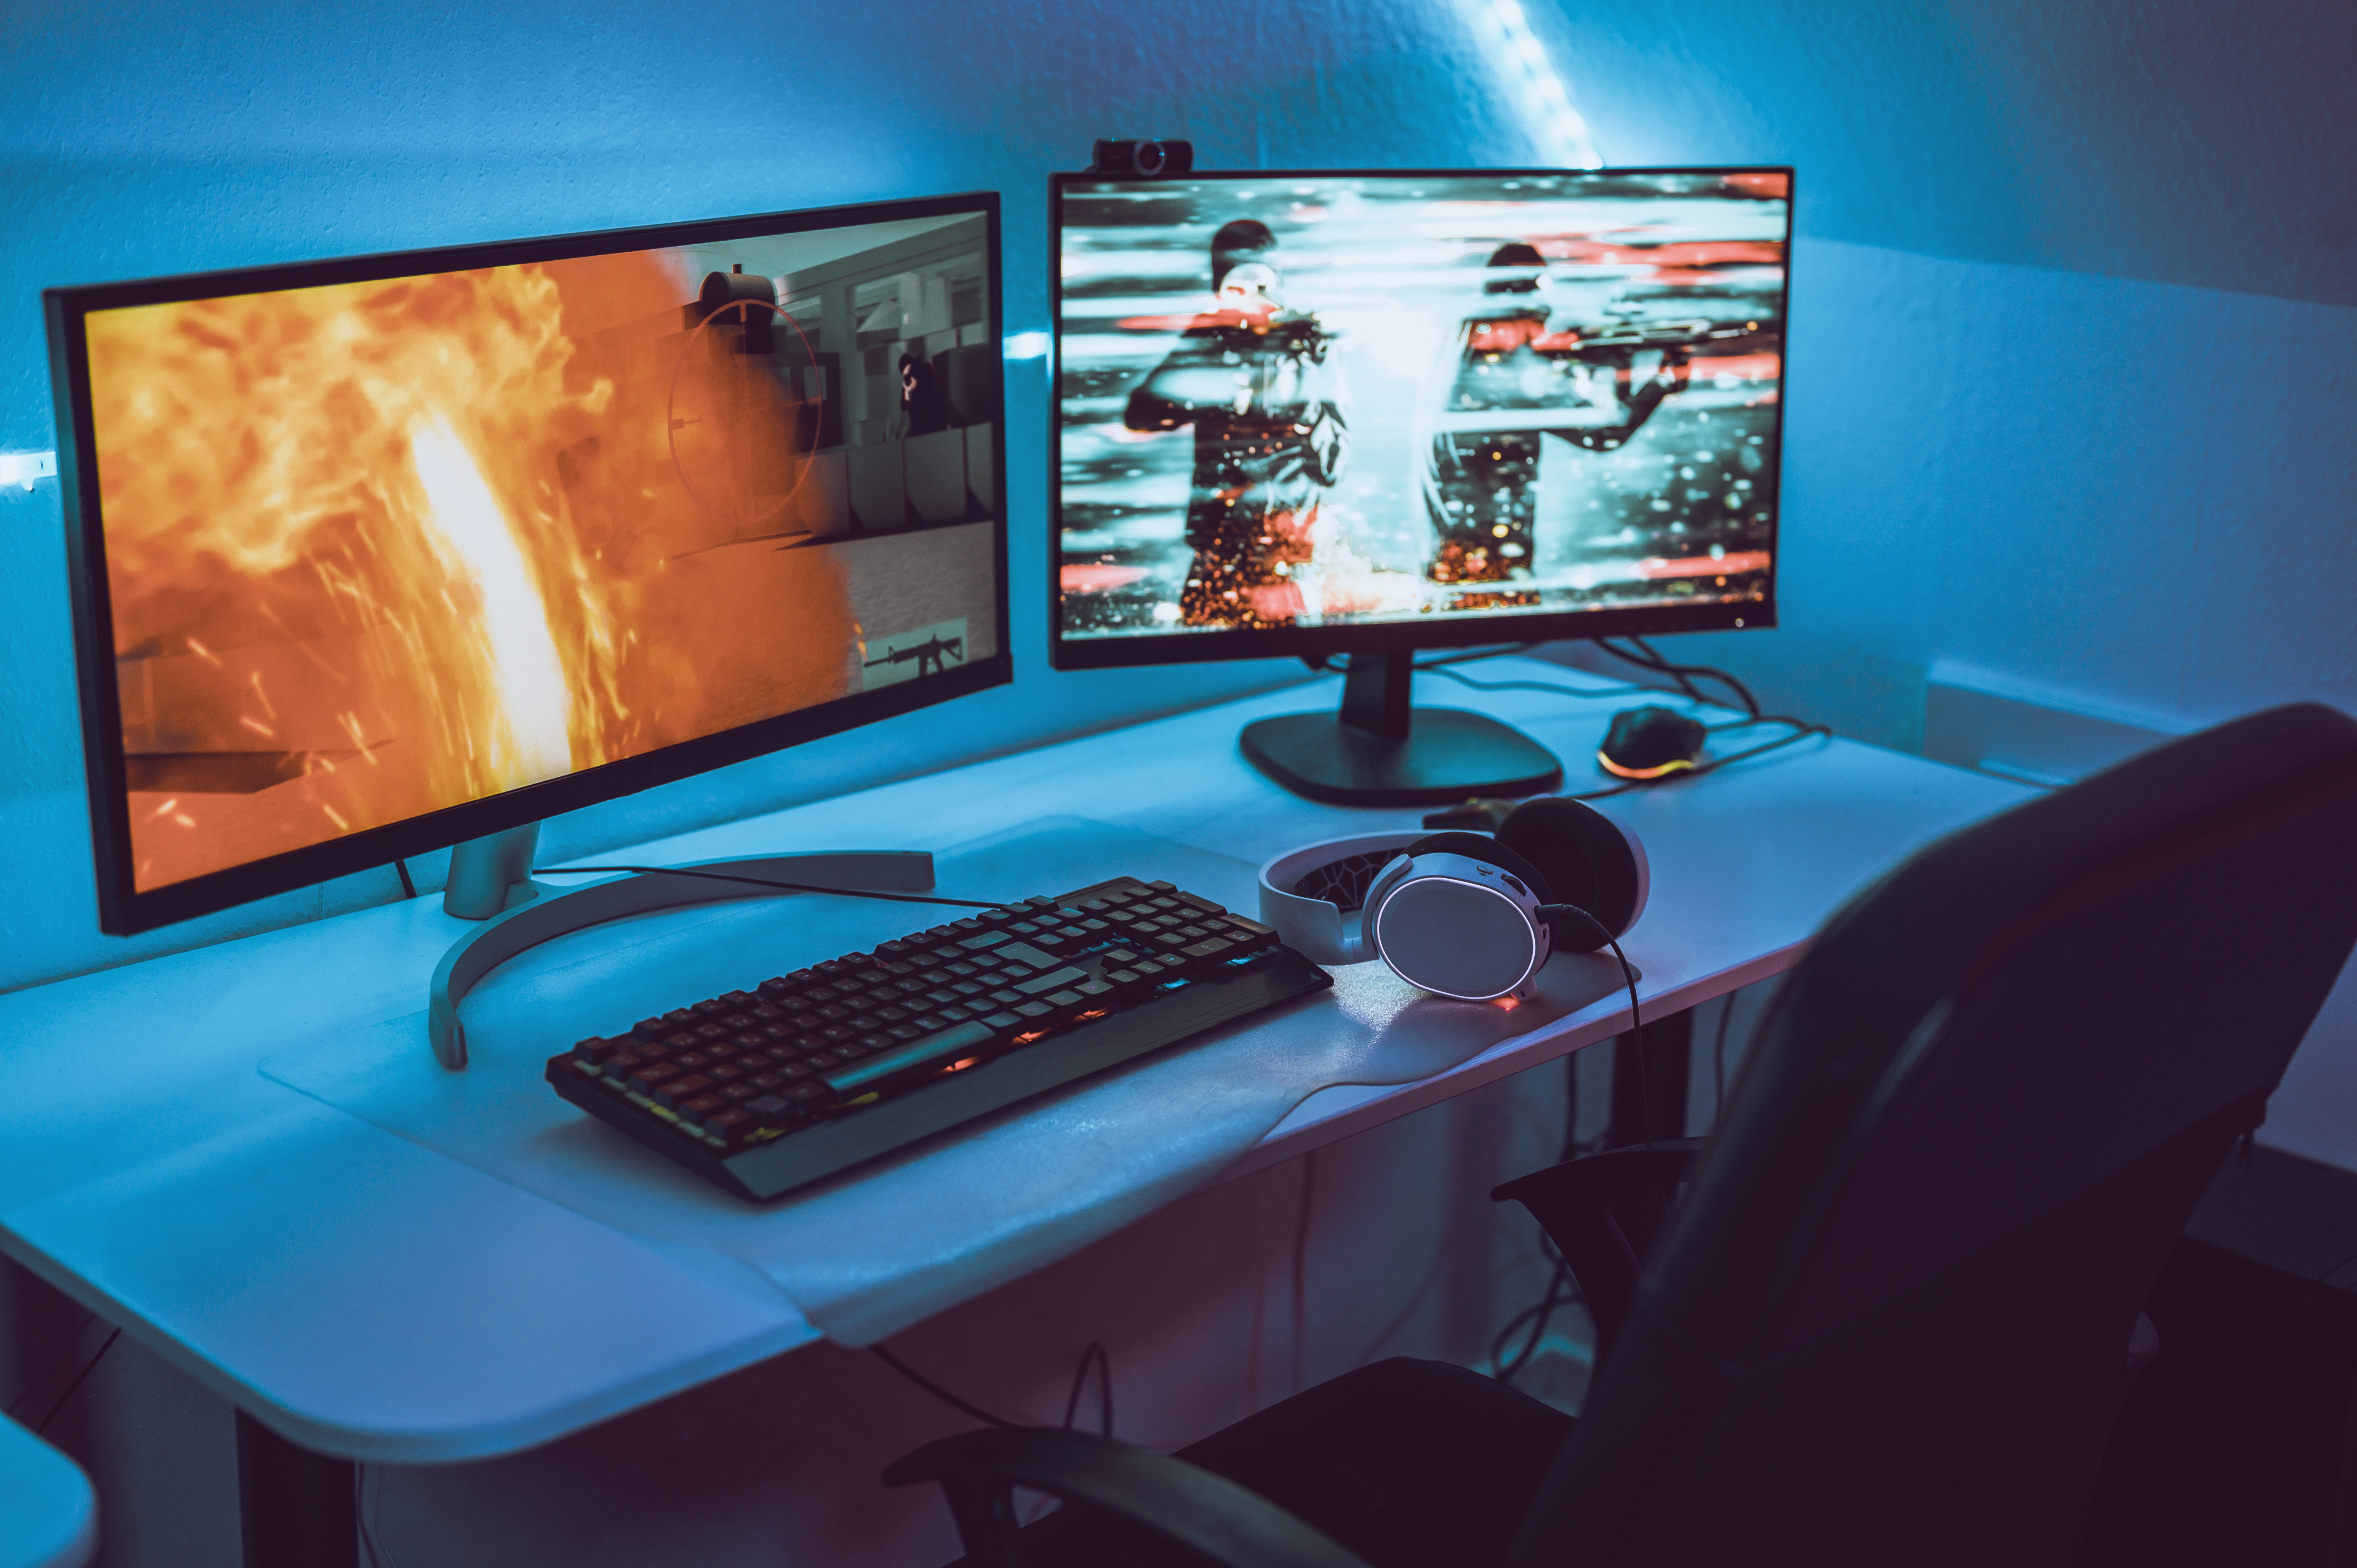 Image of a gaming computer setup with two monitors.